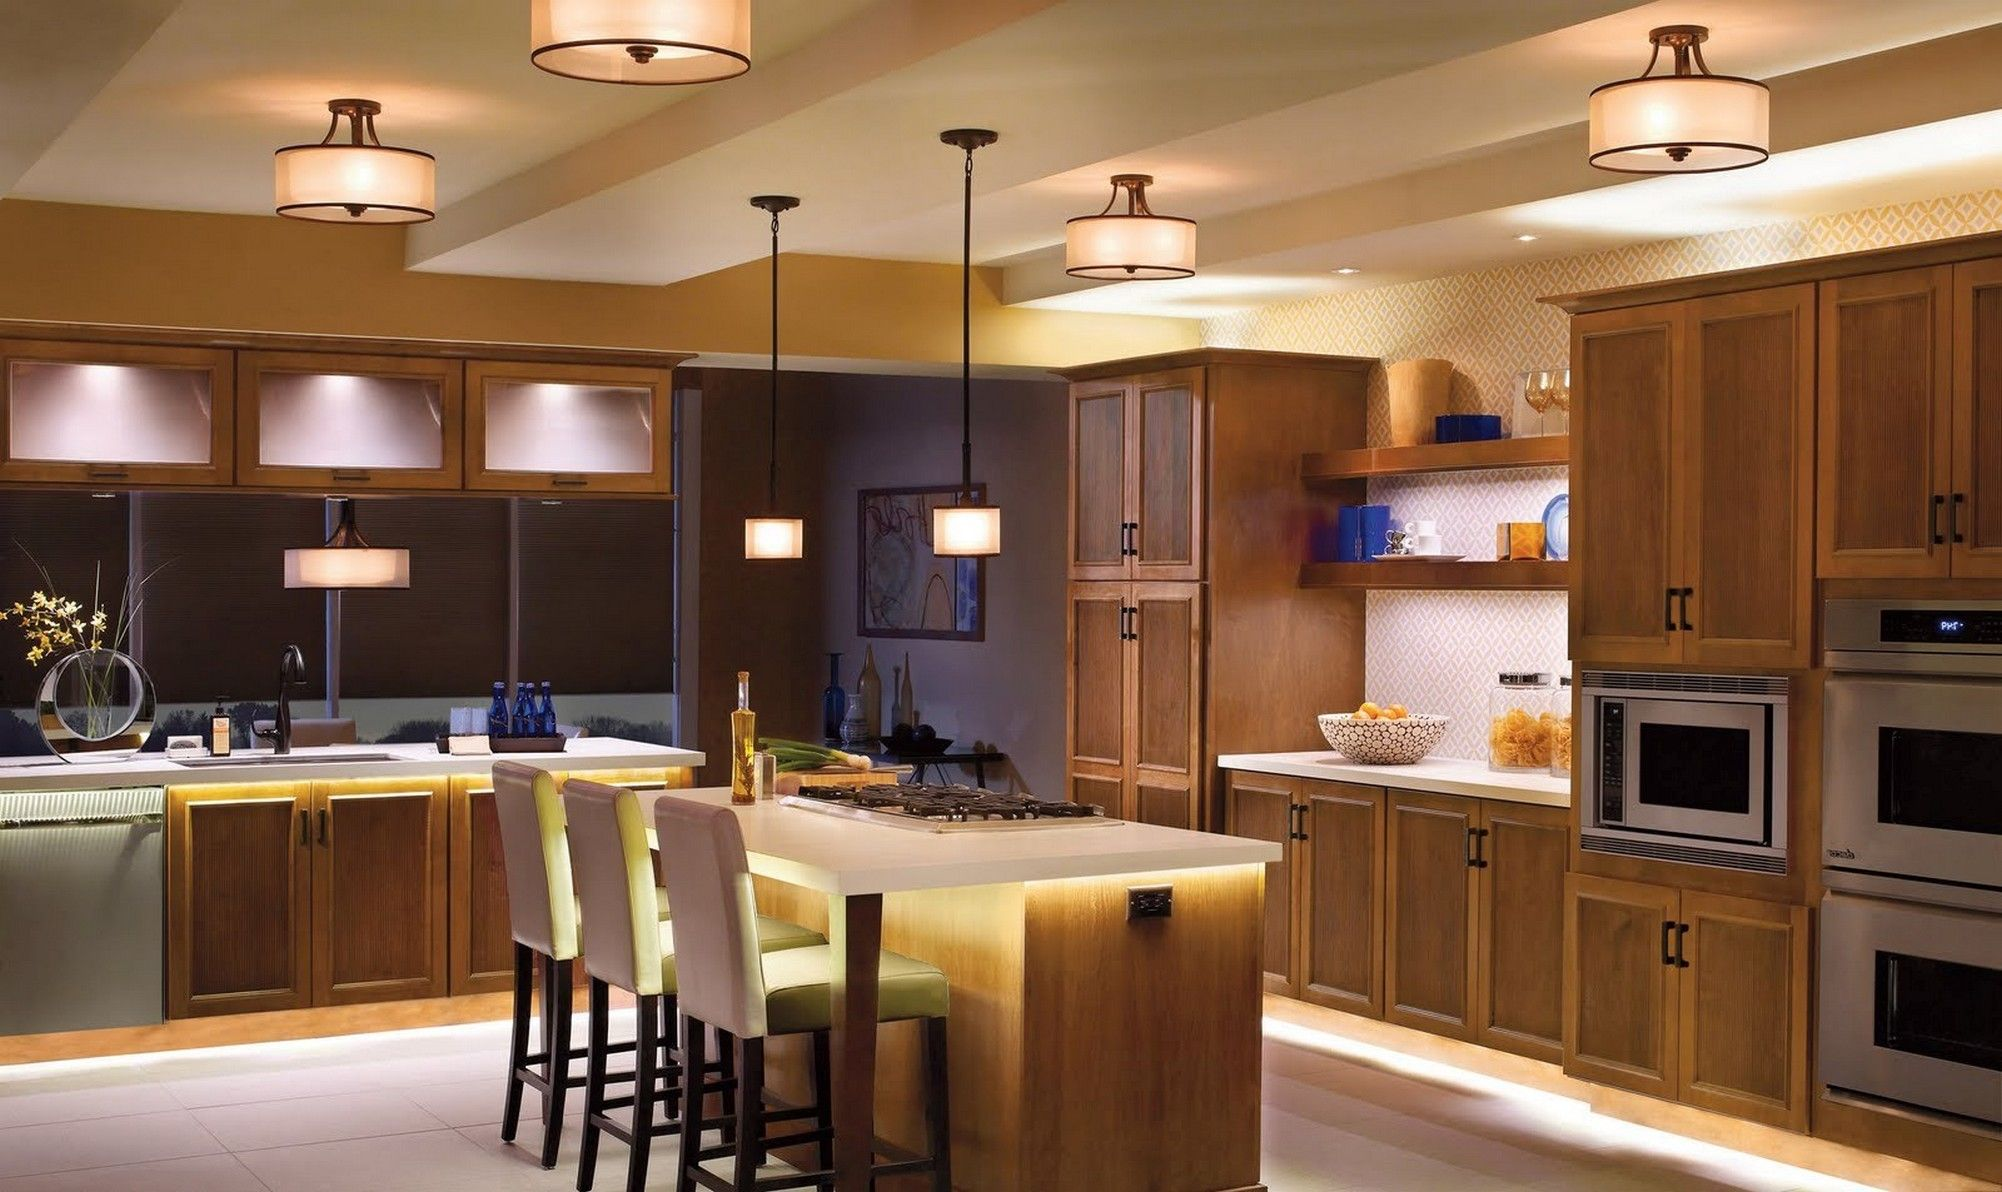 kitchen ceiling lights. Wonderful Kitchen Ceiling Lights Above Large With Wooden Island And  Cozy Stools On Wide Carpet